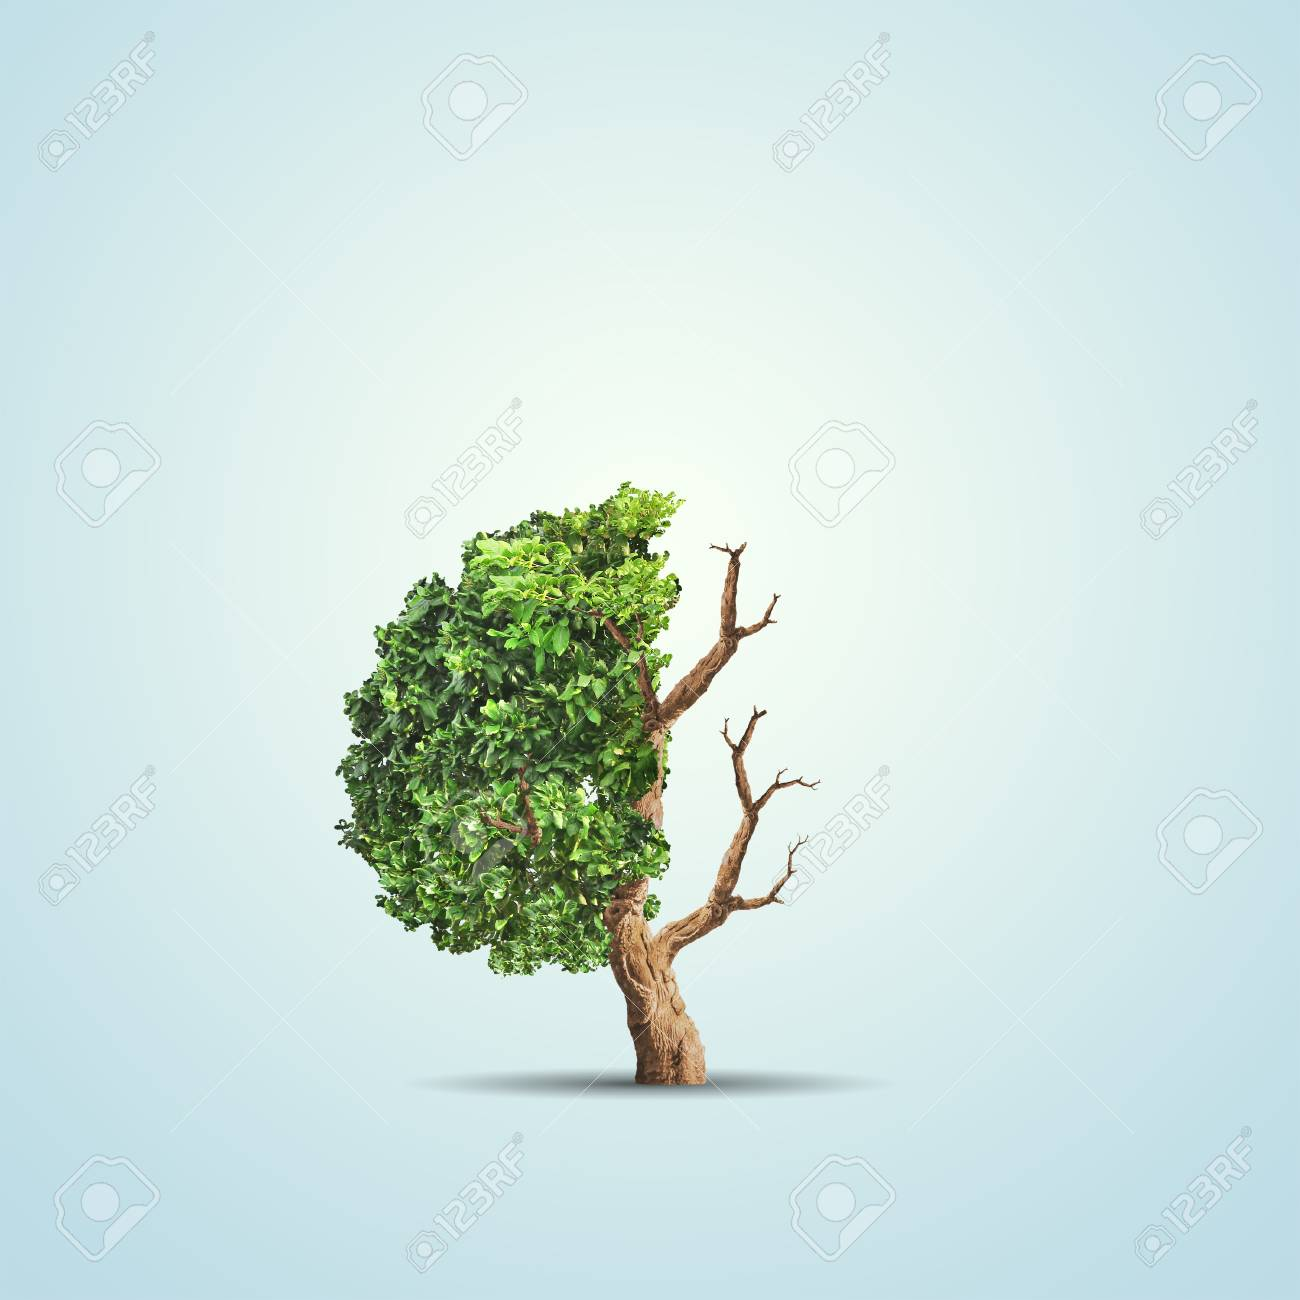 The Concept Image Of Ecology Half Alive And Half Dead Tree Stock